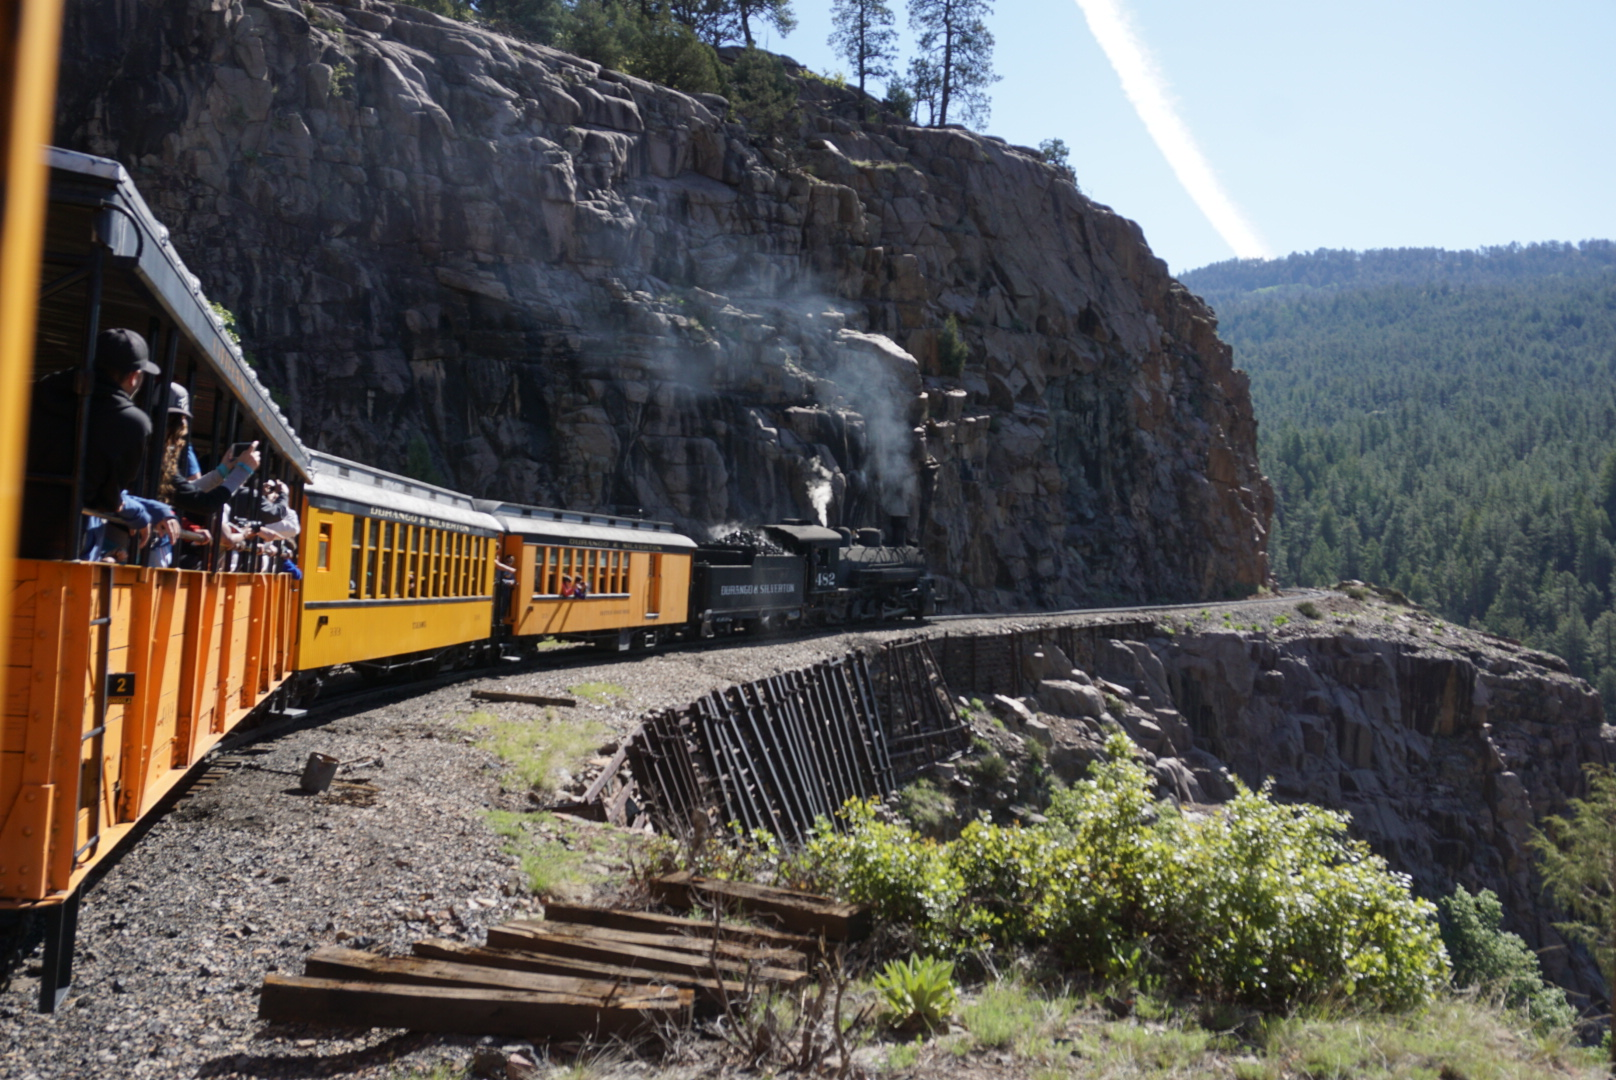 A view from the Durango & Silverton Railway